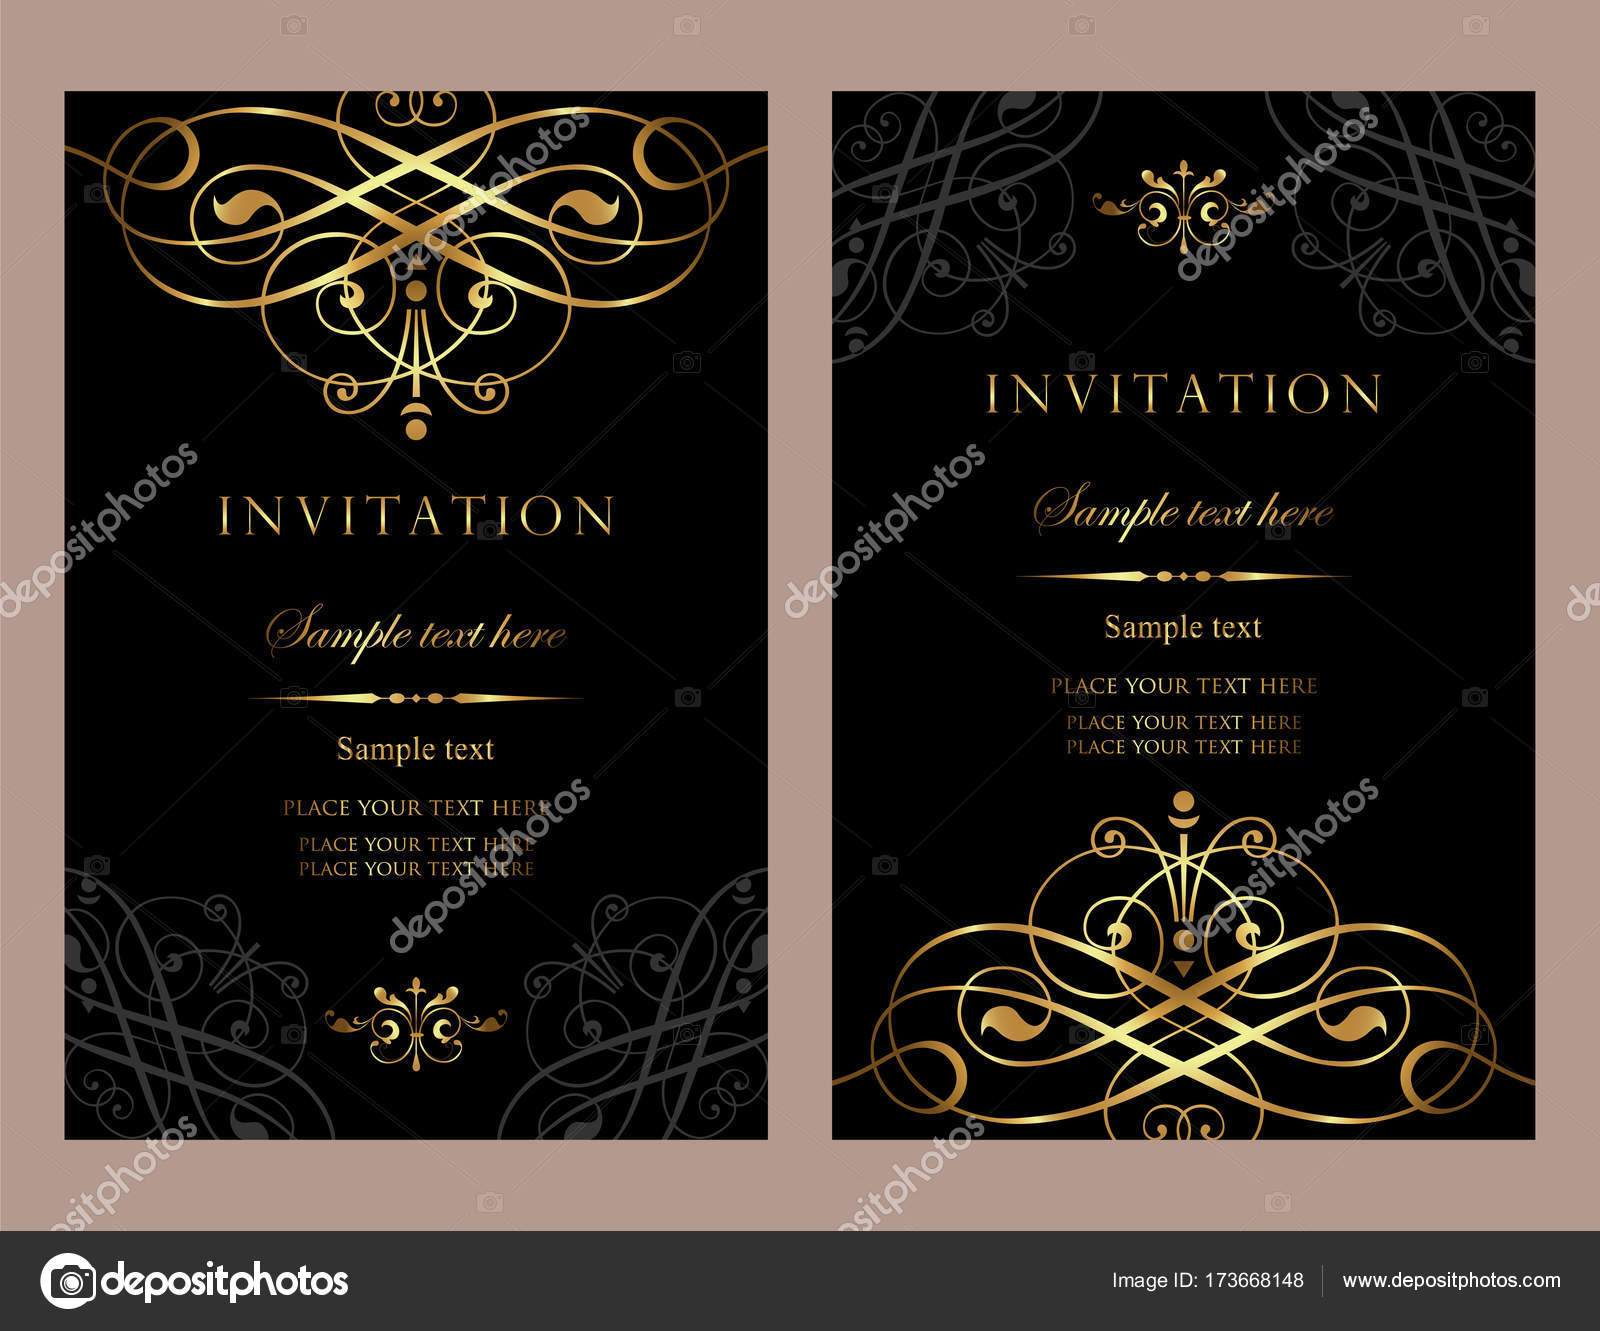 Invitation card design - luxury black and gold vintage style 3